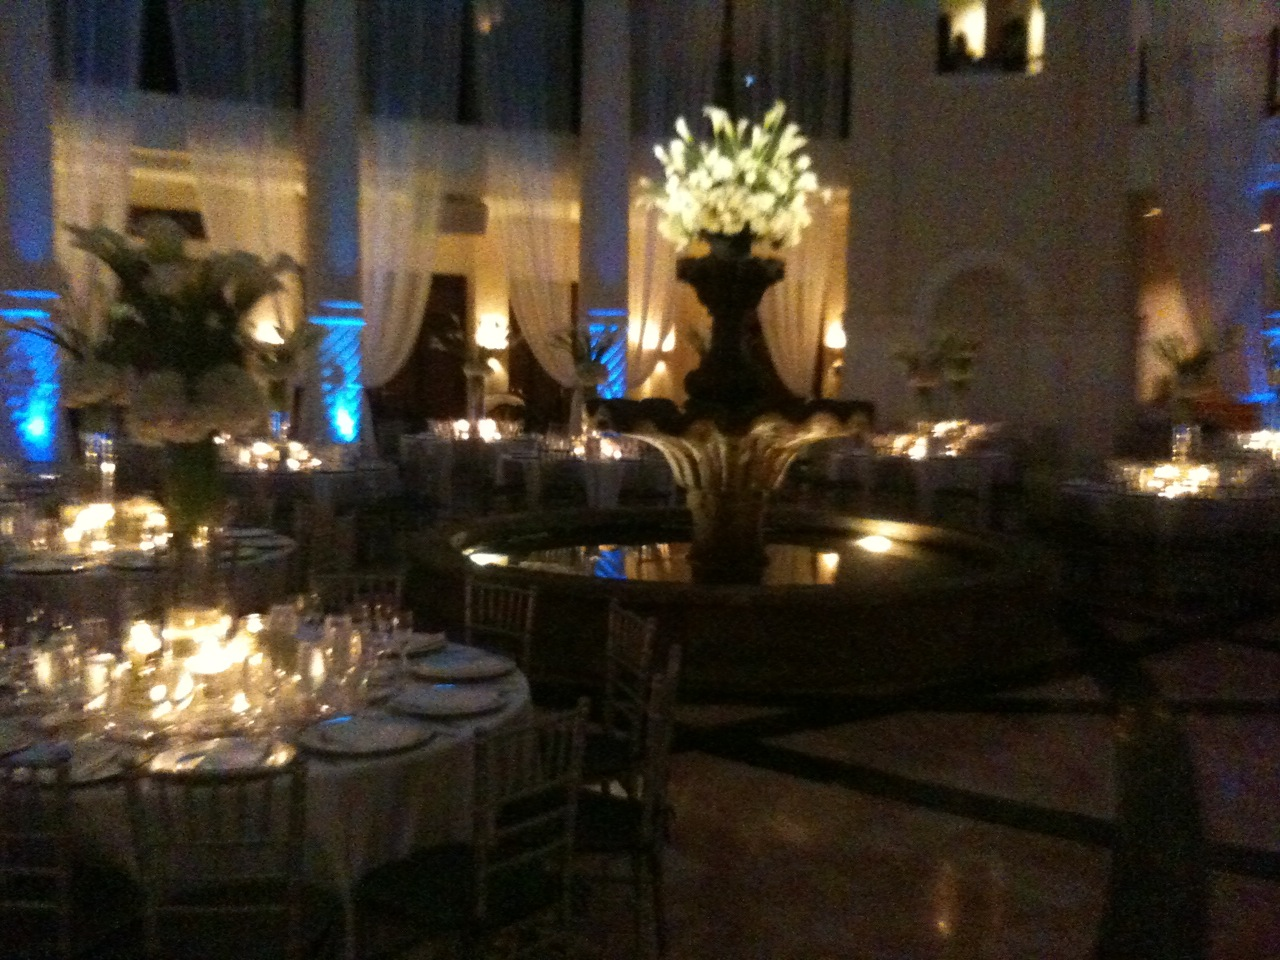 The Colonnade Dressed Up In Regal Wedding Decor Was SO Beautiful That John Couldnt Resist Snapping A Few Of His Own Photos With Phone